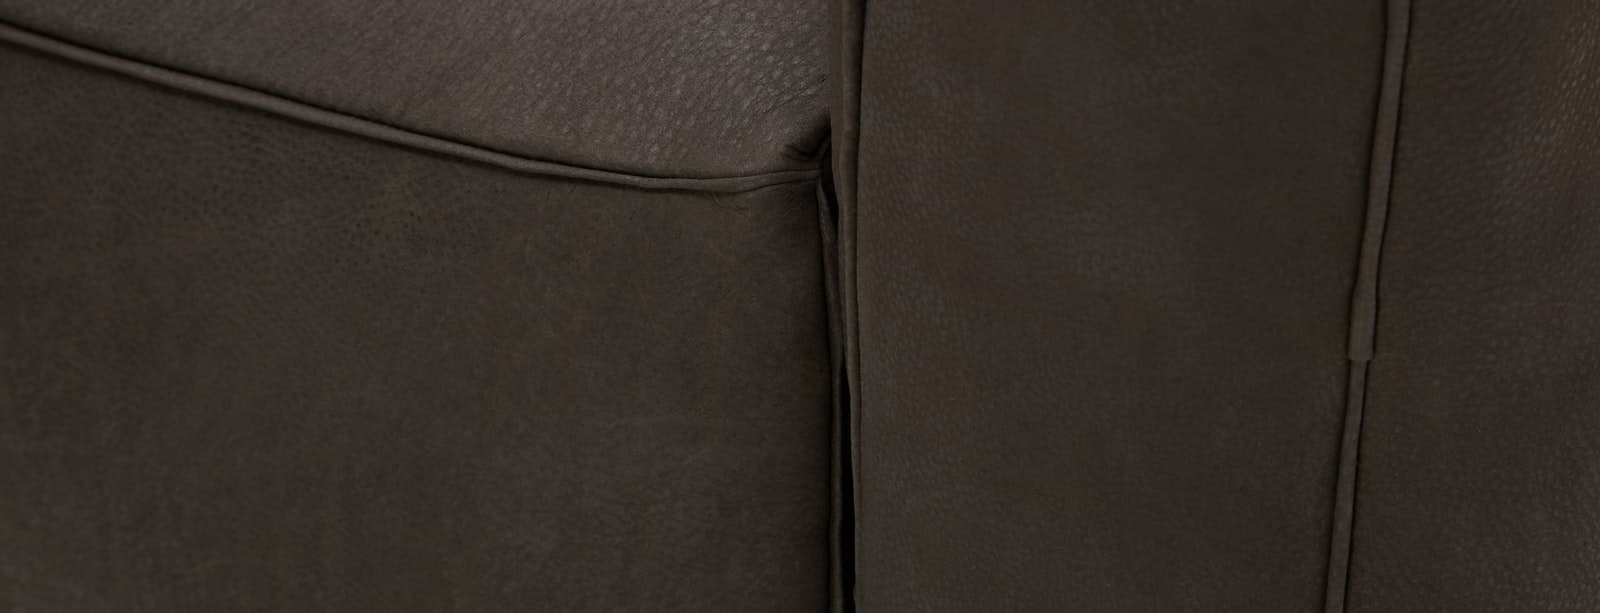 Nova-Leather-Swivel-Chair-Toledo-Graphite-T1-434